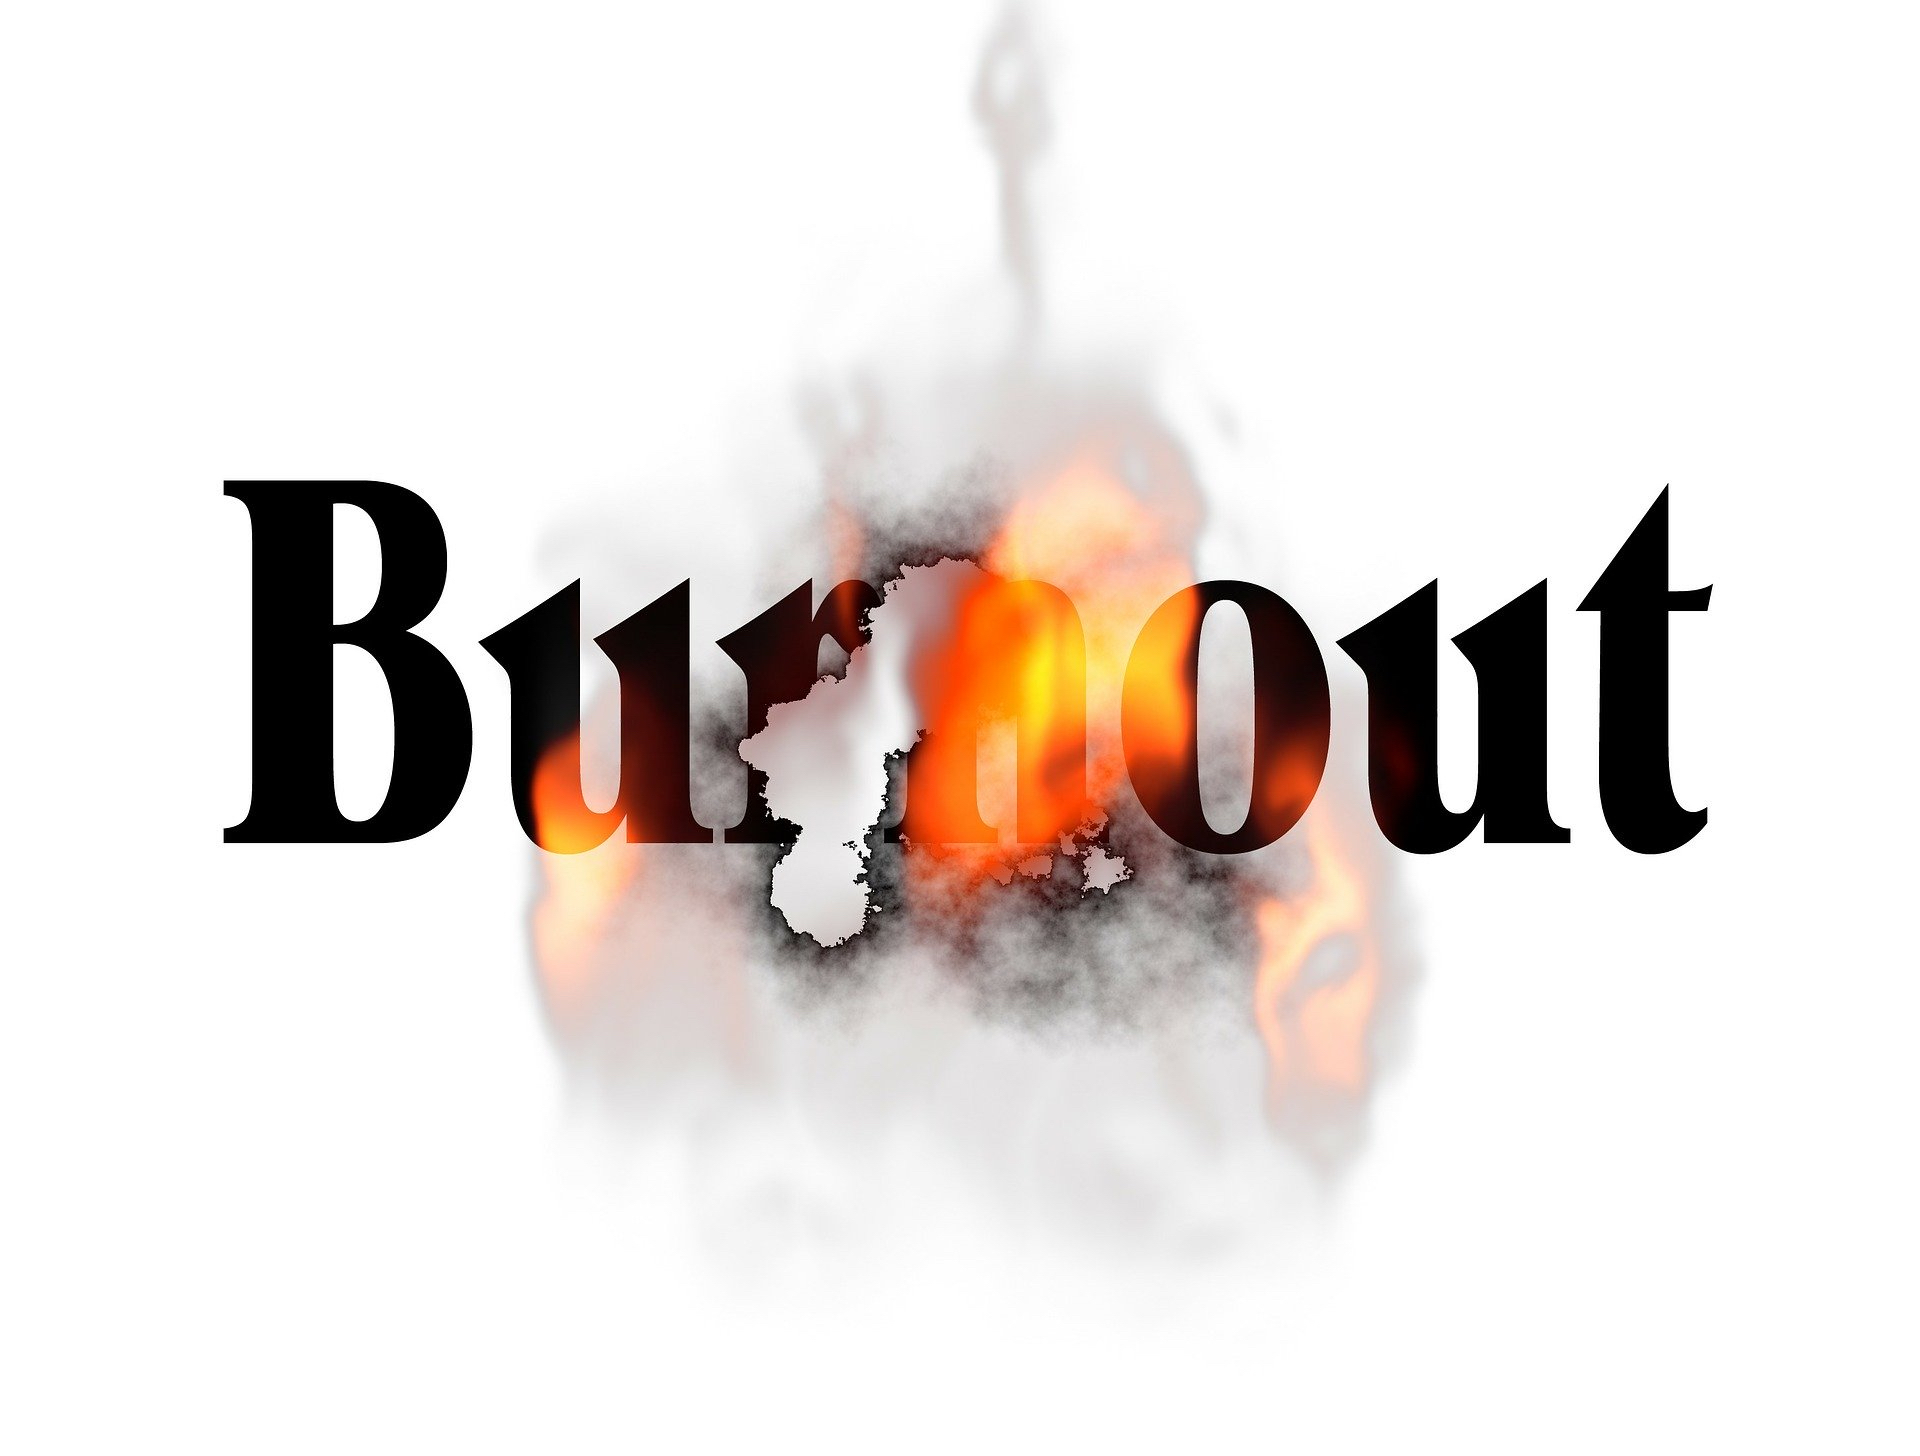 burnout-90345_1920_geralt